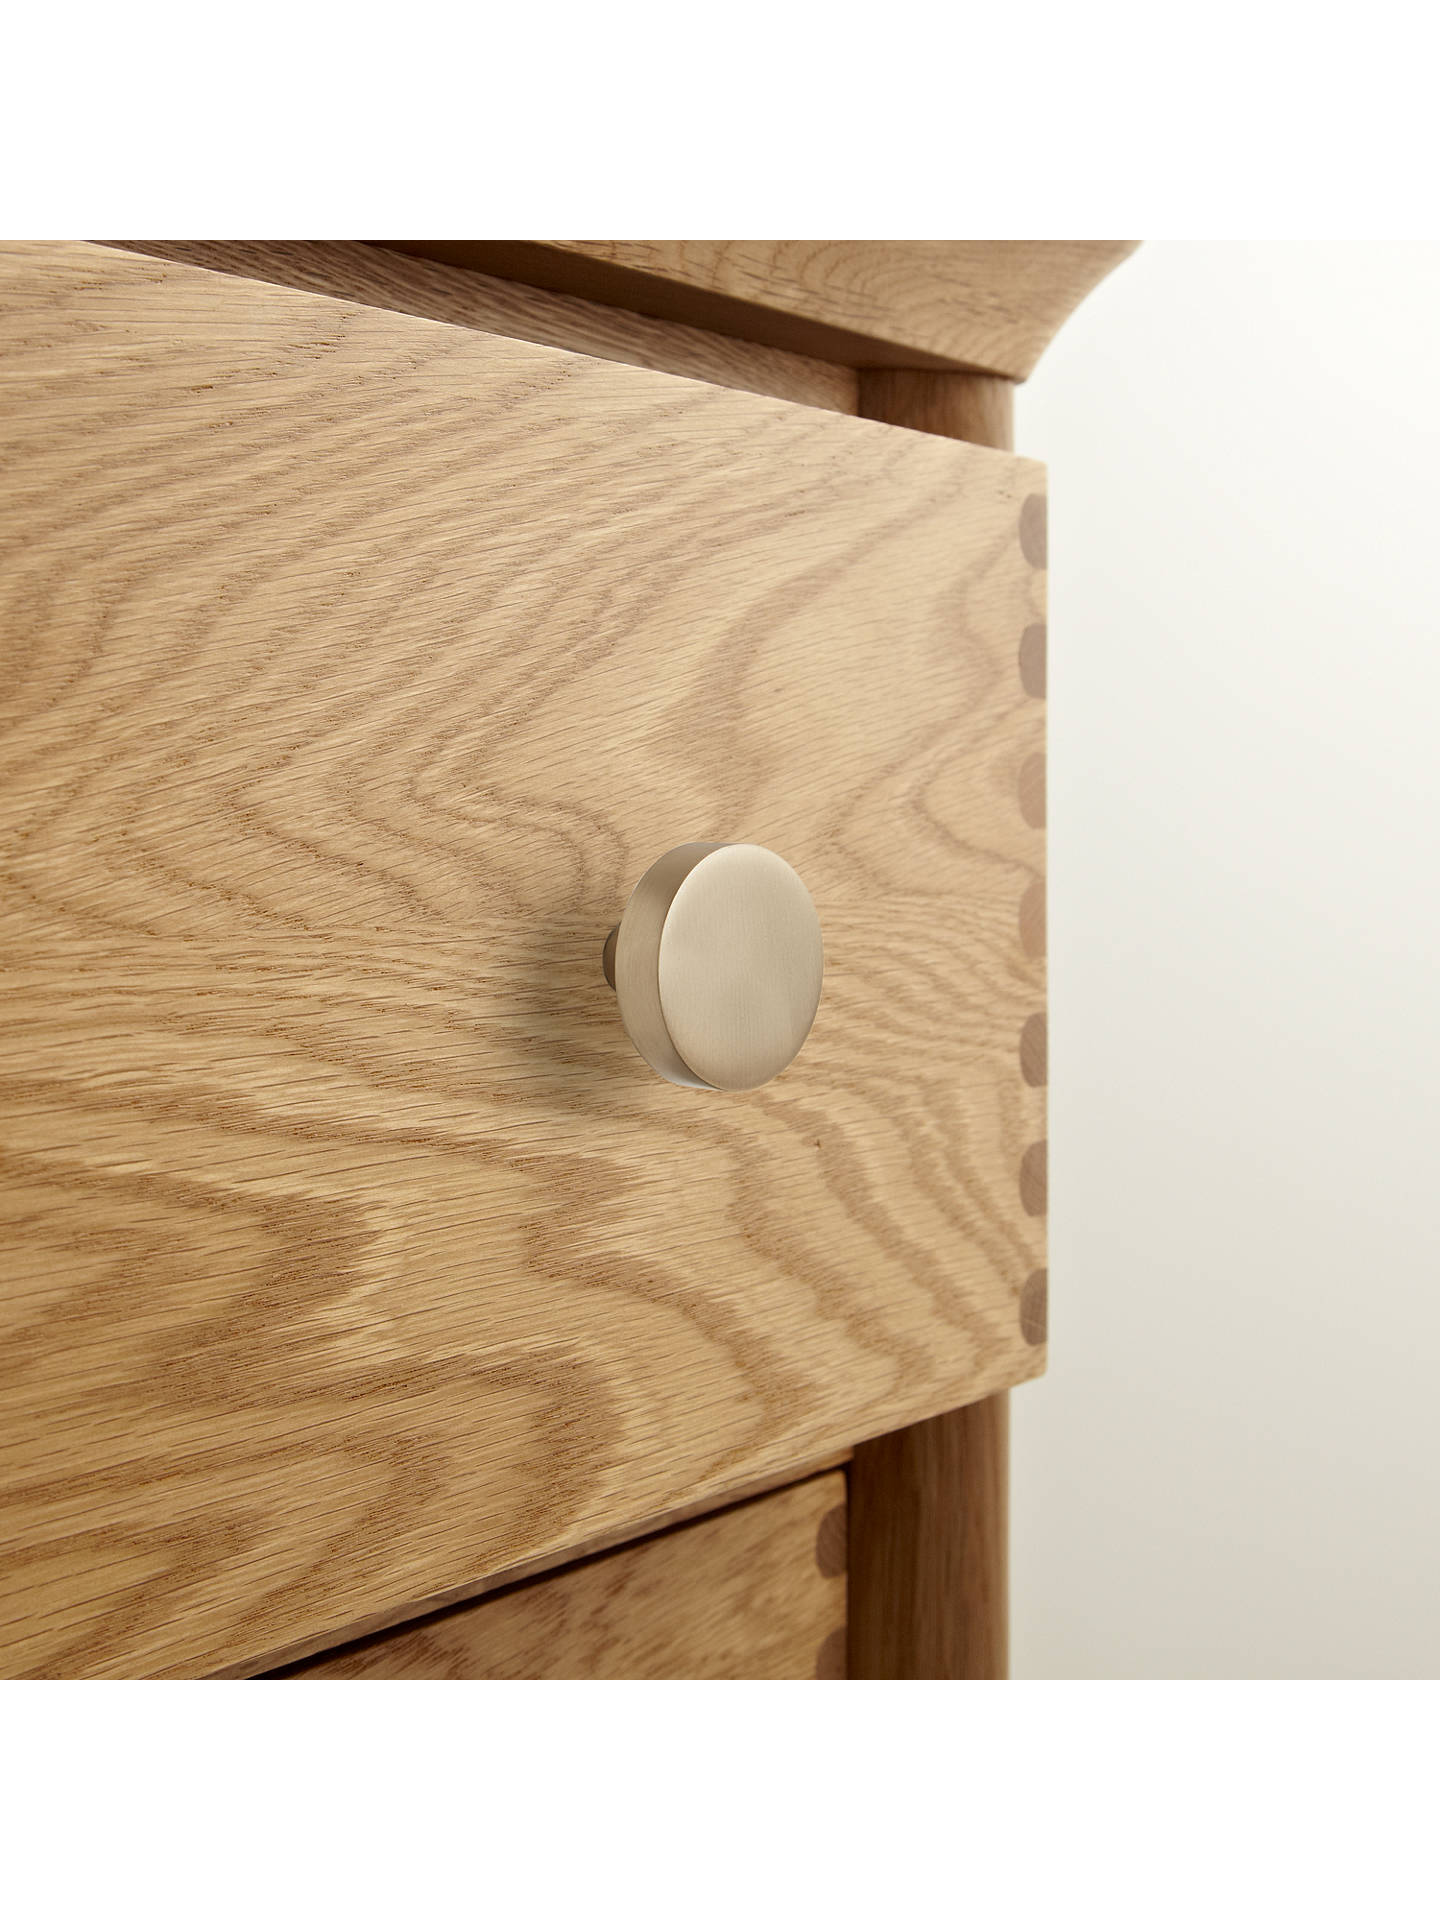 BuyDesign Project by John Lewis No.114 Cupboard Knob, Brushed Brass Online at johnlewis.com